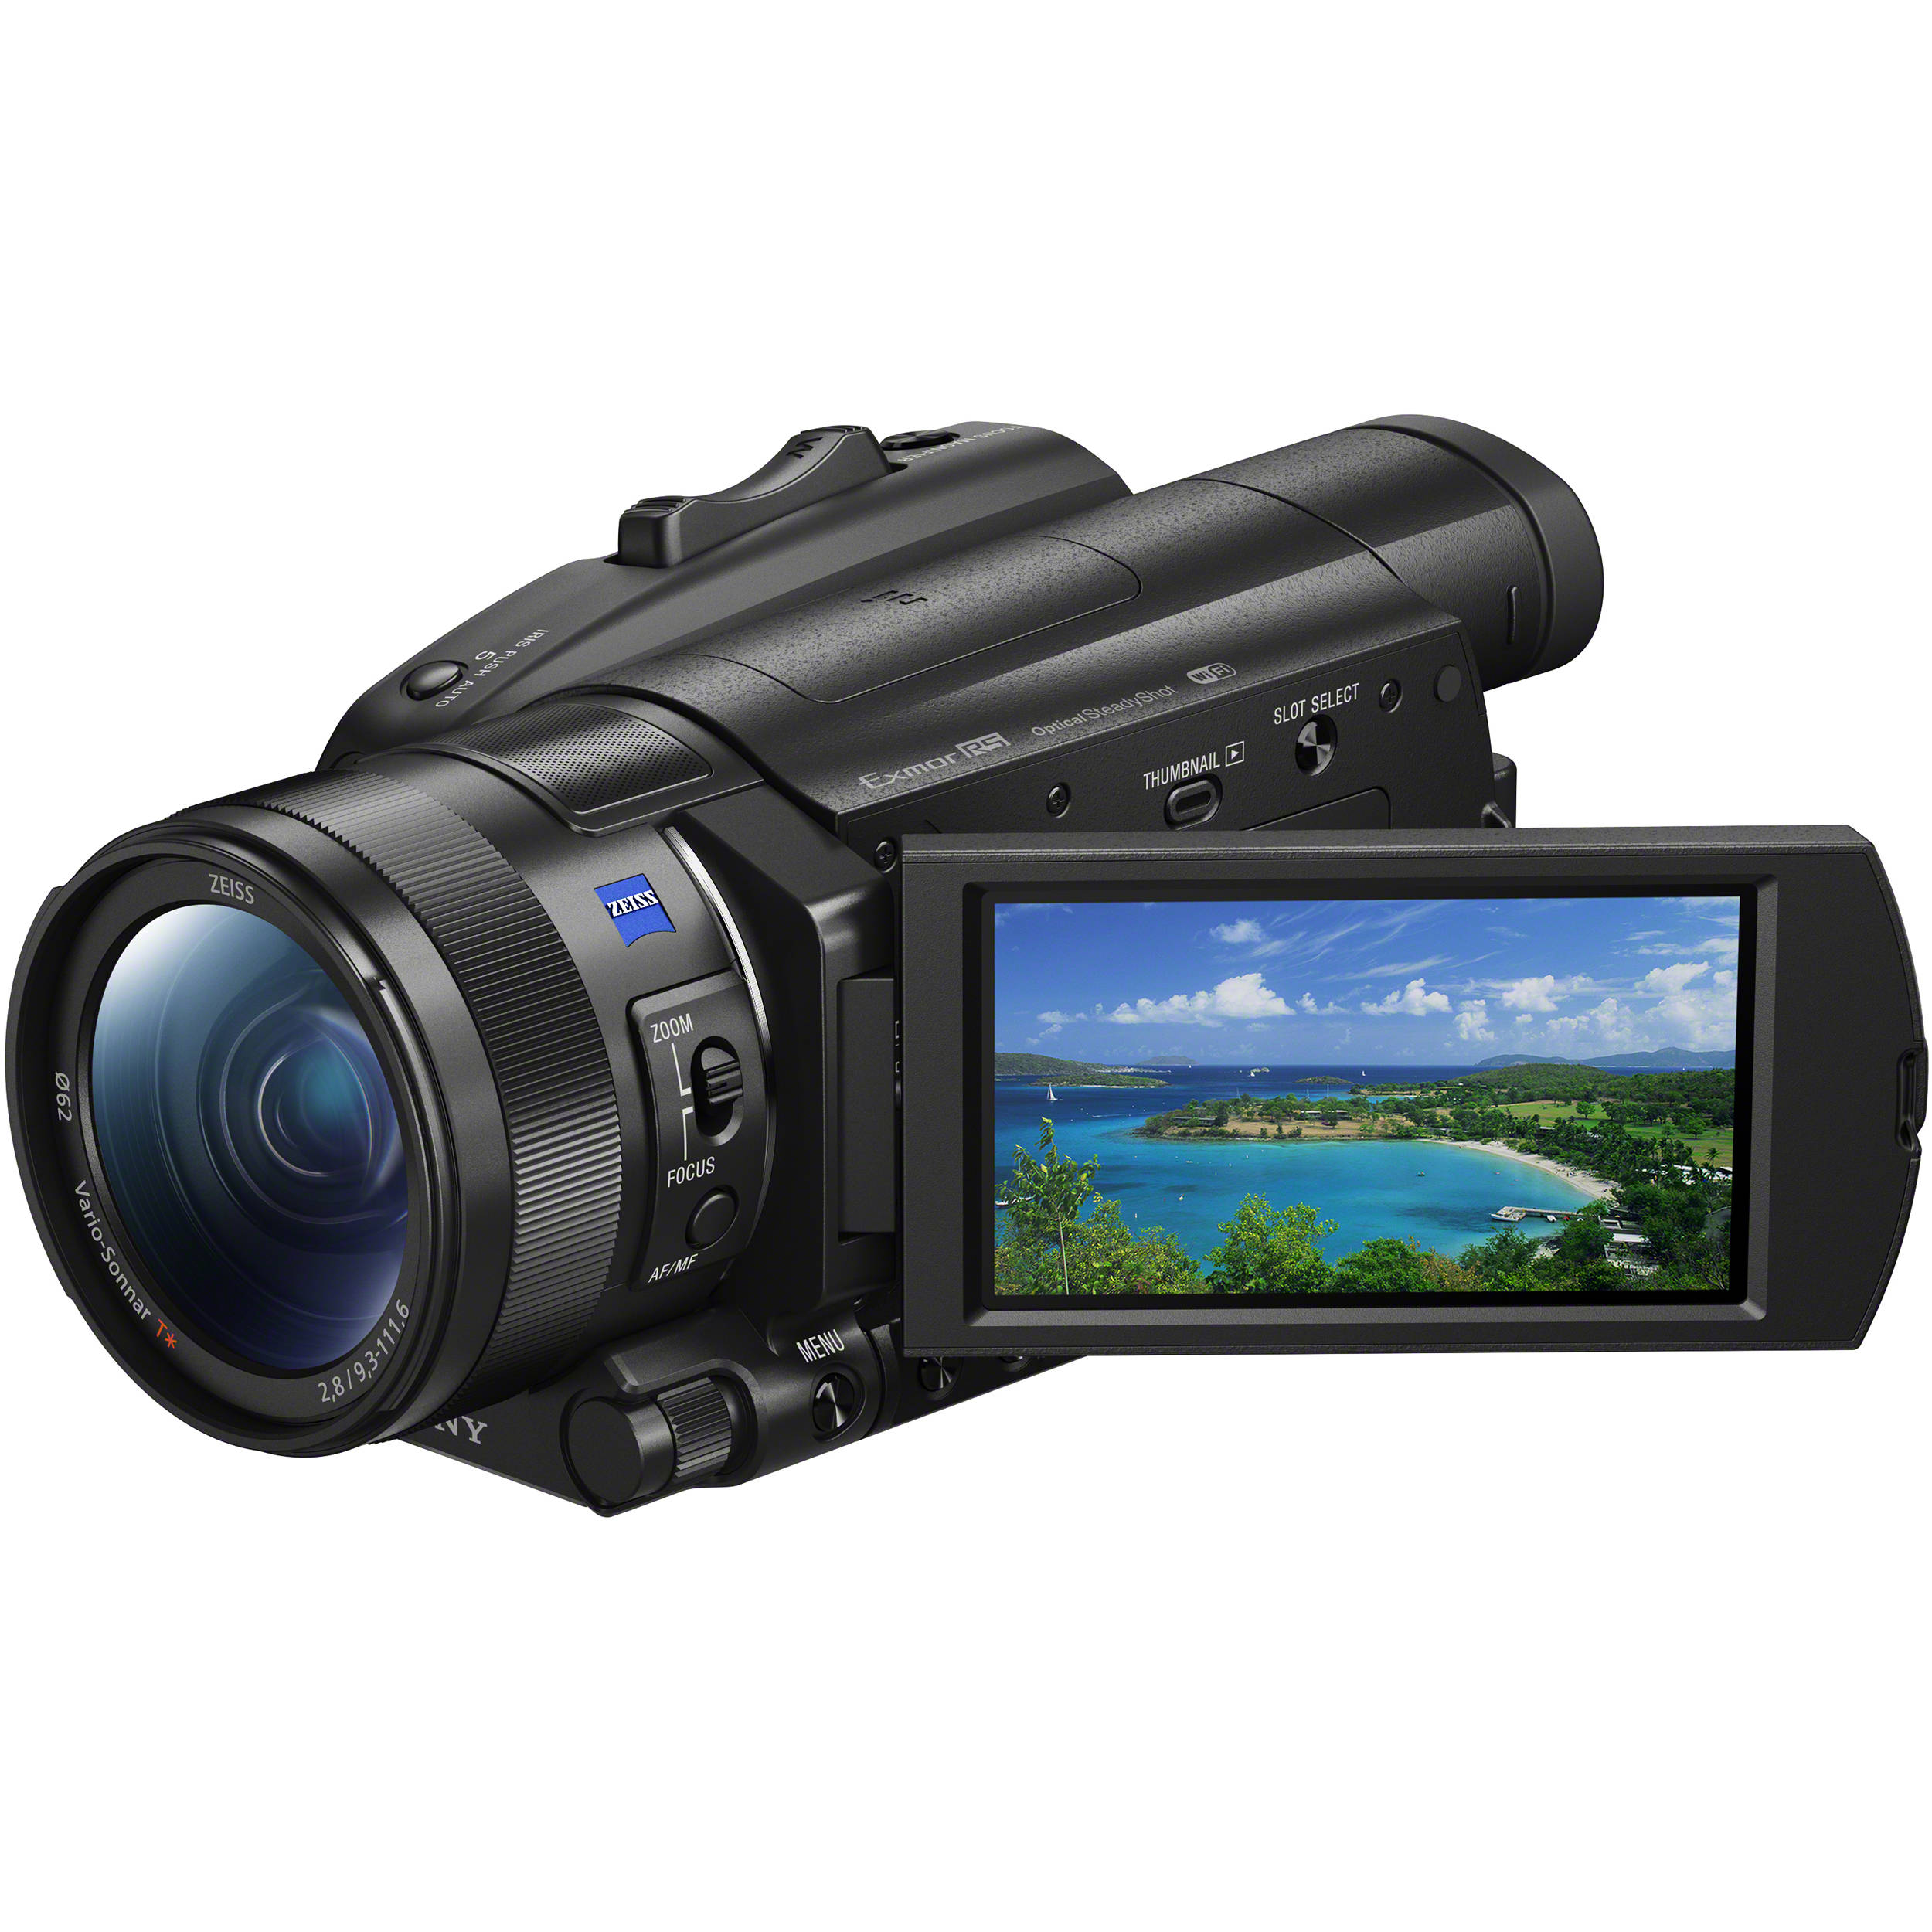 Sony FDR-AX700 4K Camcorder FDR-AX700/B B\u0026H Photo Video